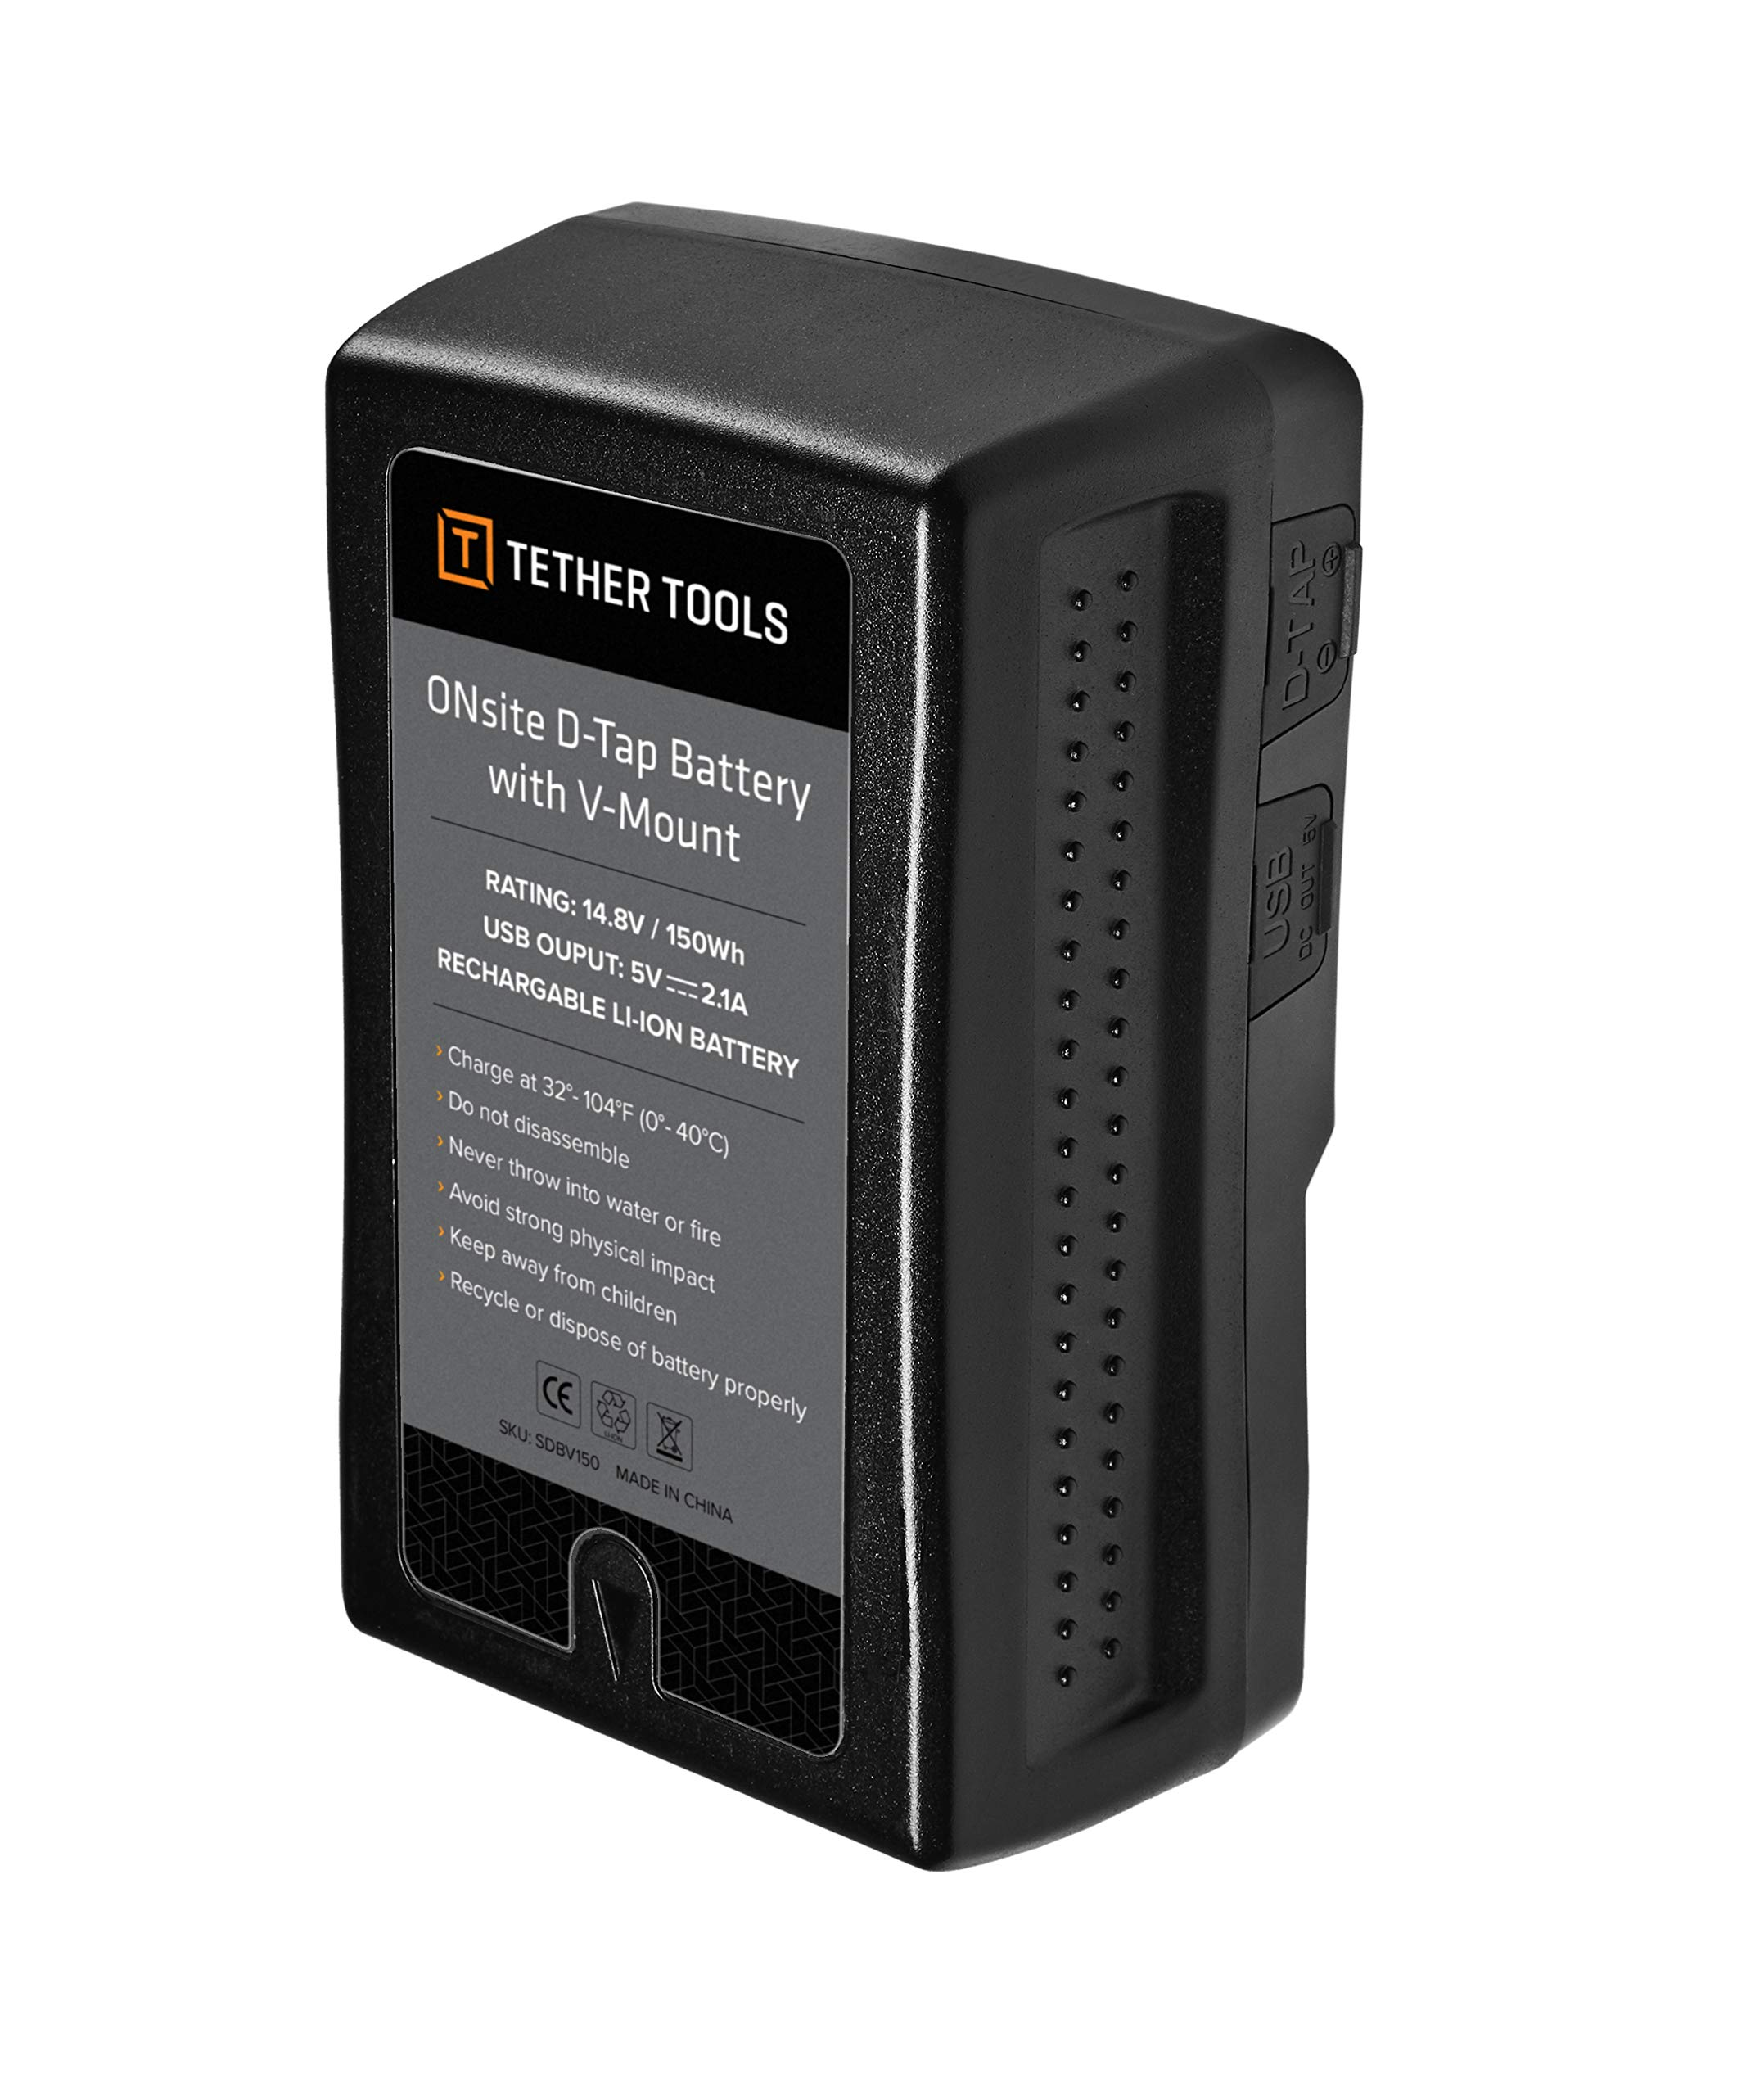 ONsite D-Tap Battery with V-Mount with US Charger (United States) by Tether Tools